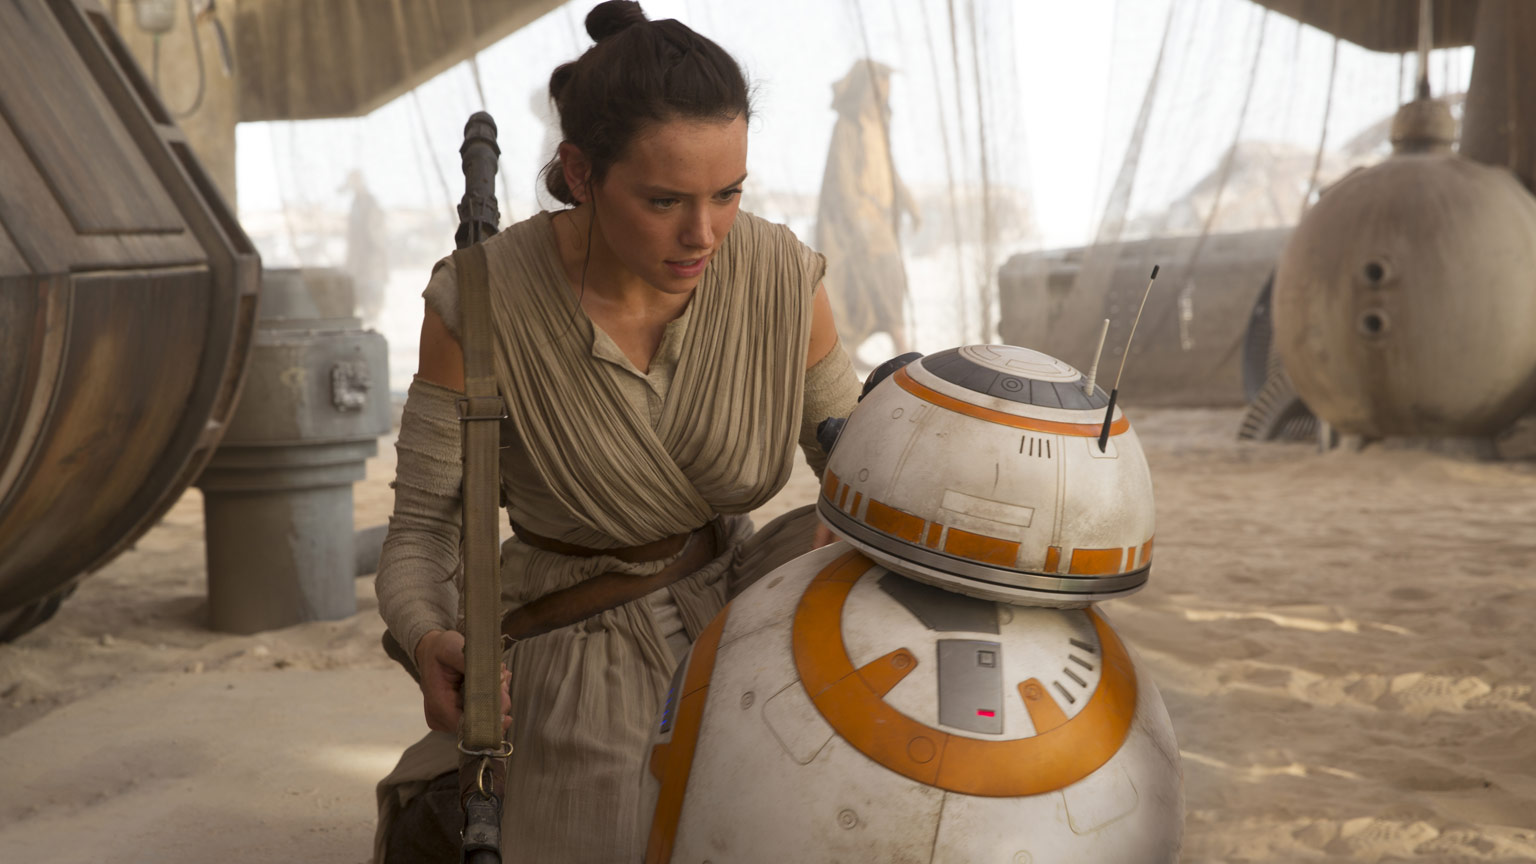 Rey talks to BB-8 in a scene from The Force Awakens.